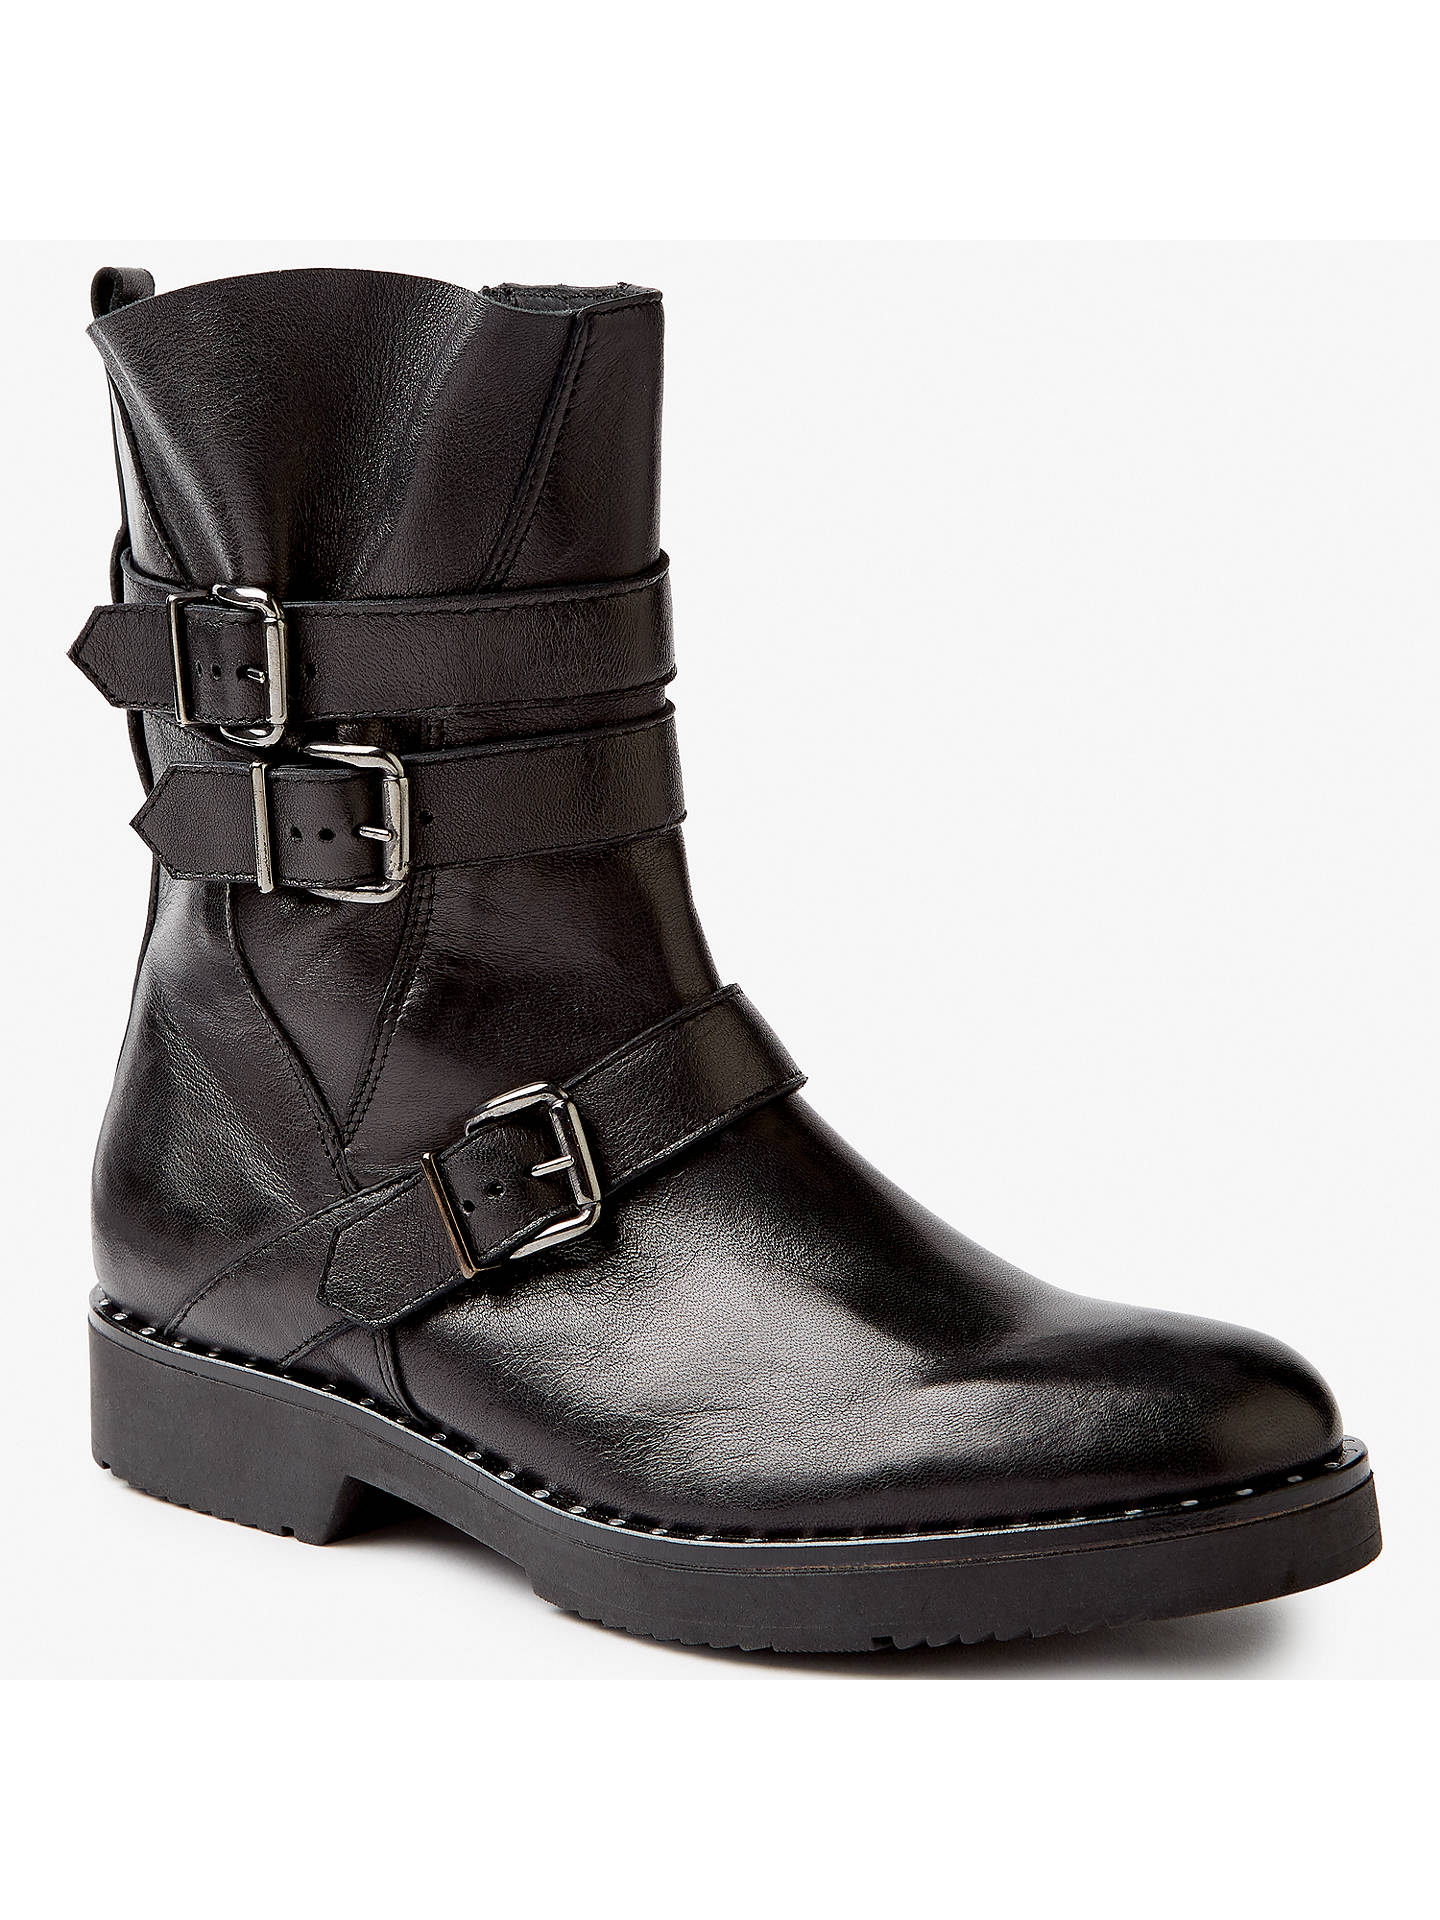 BuySomerset by Alice Temperley Priston Biker Boots, Black, 4 Online at johnlewis.com